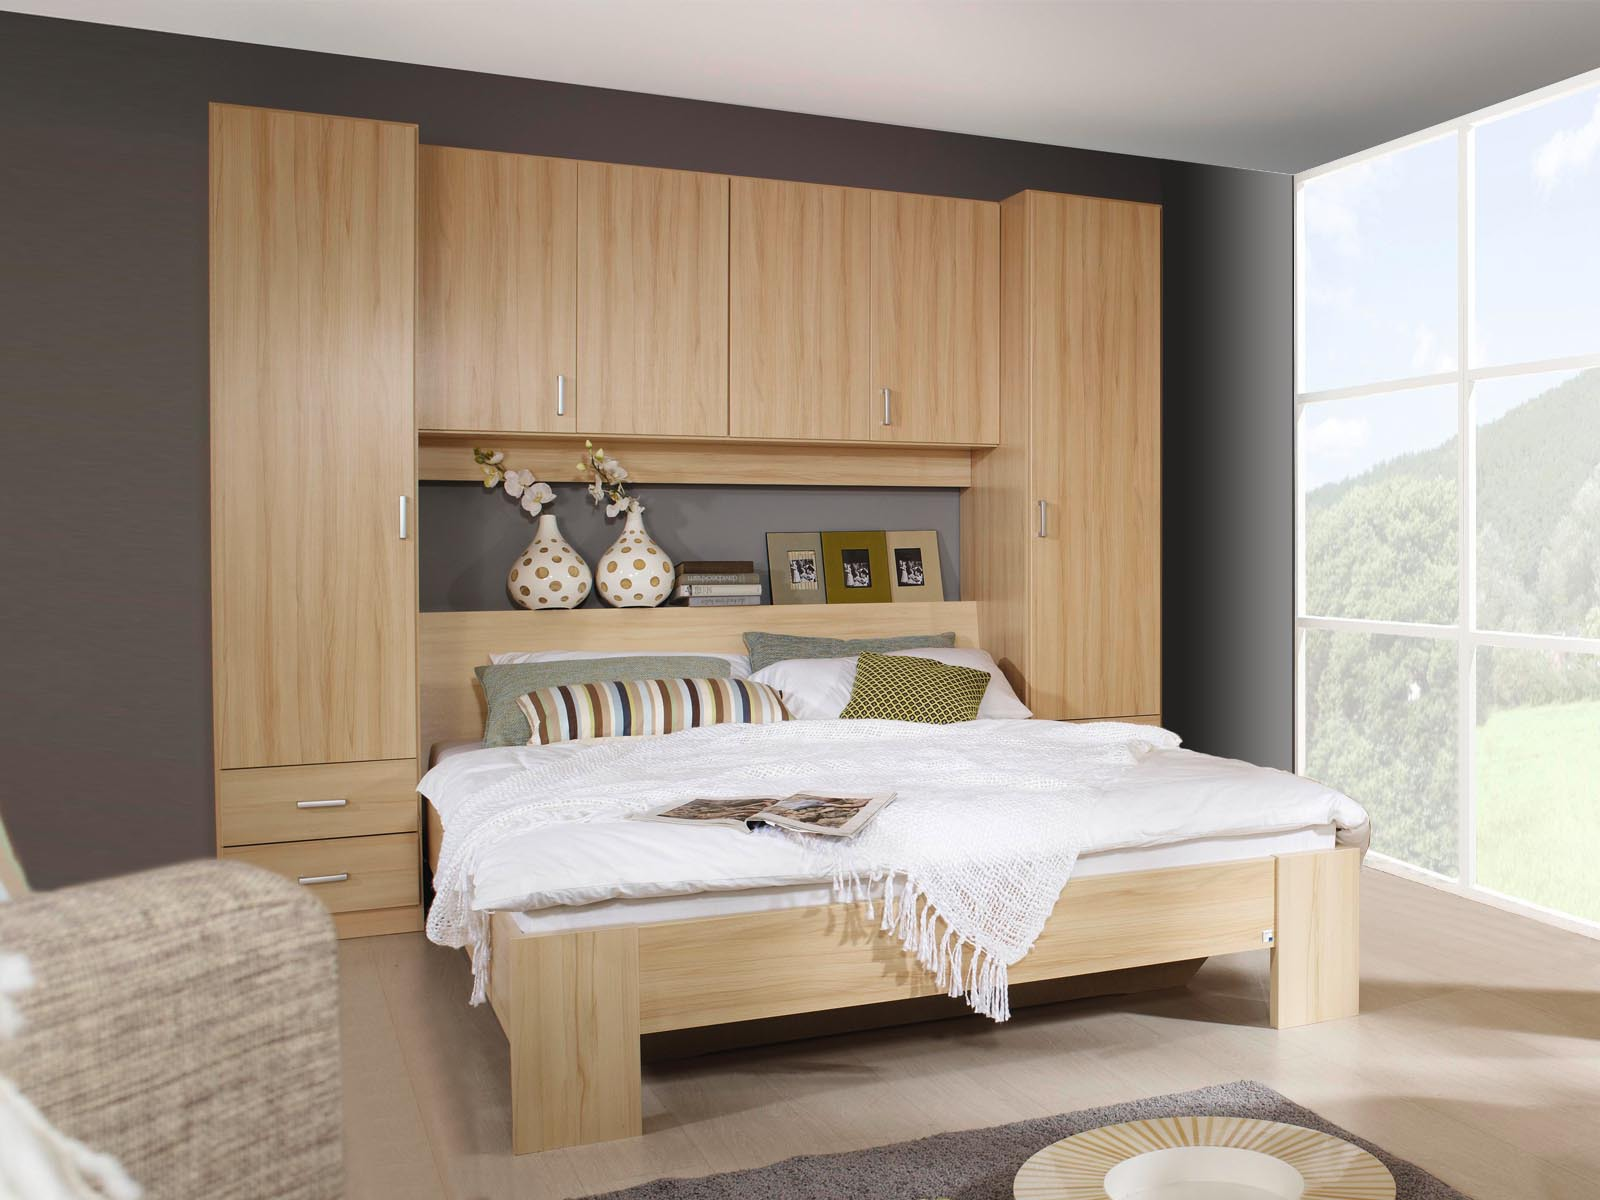 tete de lit avec rangement coulissant. Black Bedroom Furniture Sets. Home Design Ideas